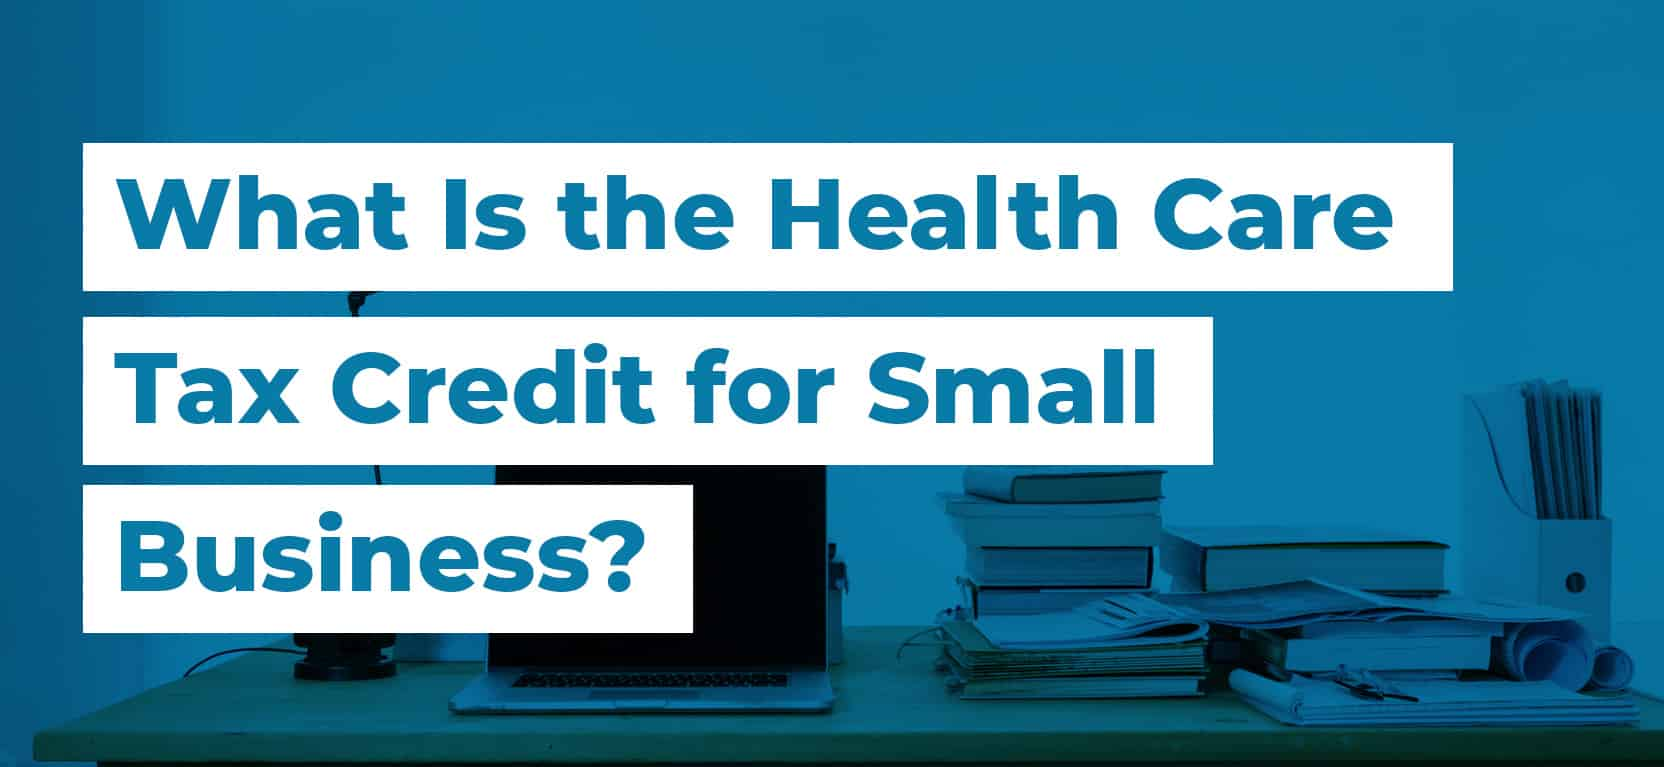 48 What Is the Health Care Tax Credit for Small Business2